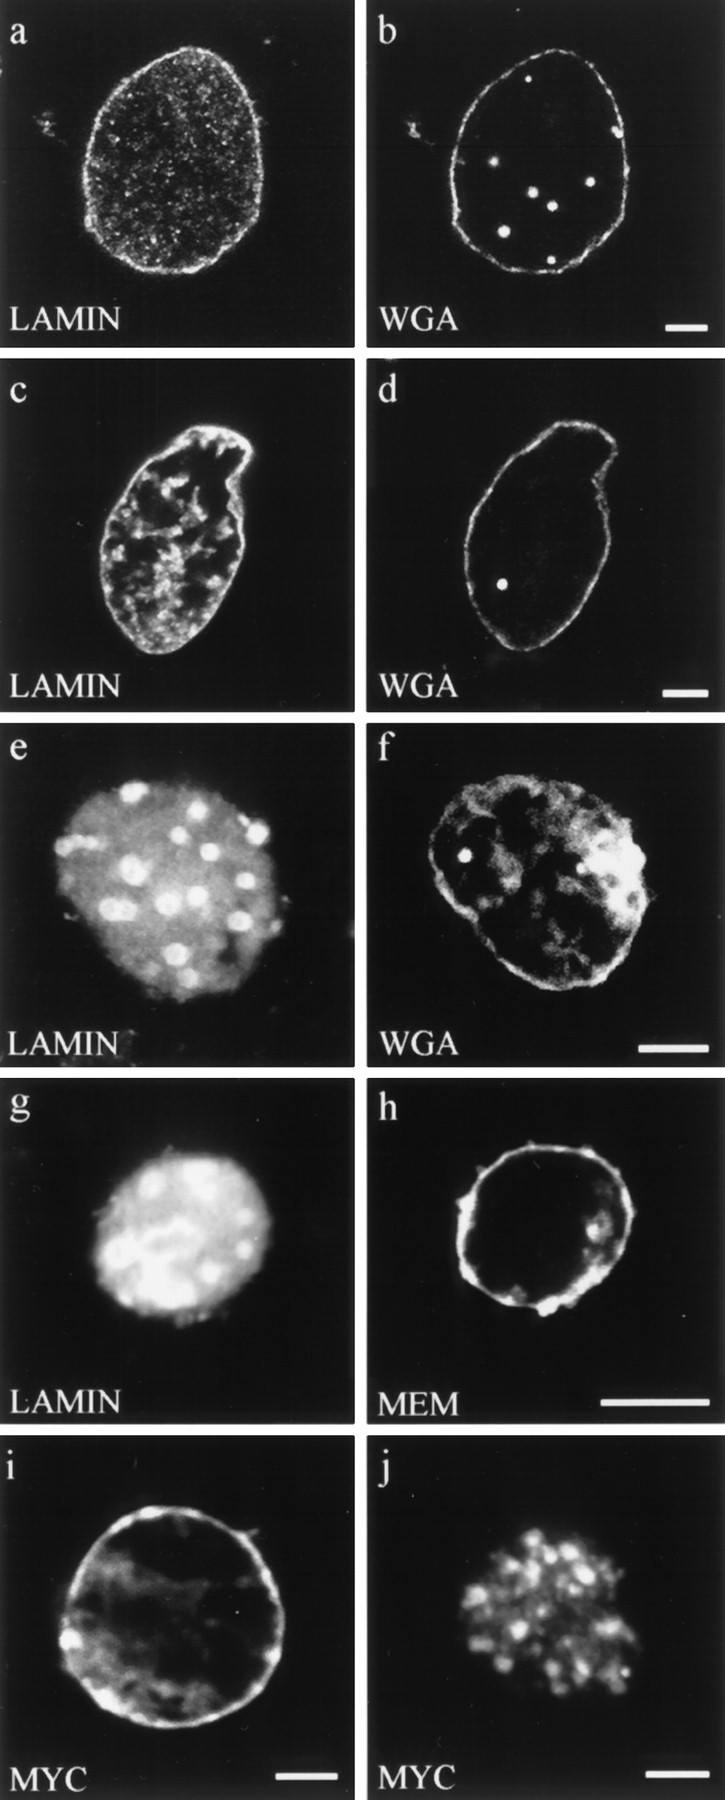 Double label fluorescence observations of nuclei stained for different aspects of nuclear envelope structure and function. ( a–f ) Nuclei were assembled in interphase extracts containing: ( a and b ) buffer control, ( c and d ) lamin A, and ( e and f ) ΔNLA. Nuclei were stained for ( a ) lamin B3 or ( c and e ) human lamin A, and ( b , d , and f ) the nuclear pore WGA binding proteins using fluorescently tagged WGA. Nuclei assembled under all three conditions appear to have essentially normal distributions of WGA binding proteins at the nuclear periphery. ( g and h ) Nucleus assembled in the presence of ΔNLA and stained for ( g ) ΔNLA and ( h ) the membrane dye DIOC 6 ( MEM ). The nucleus contains a disrupted lamin organization but retains normal membrane staining. Bar, 5 μm. ( i and j ) Import of wild-type lamin A into ( i ) buffer control and ( j ) ΔNLA-disrupted nuclei. The wildtype lamin A was detected using the myc 9E10 epitope antibody ( 13 ). Nuclei were assembled with or without ΔNLA, and 90 min after the initiation of assembly, myc-tagged human lamin A was added to the reaction. The nuclei were fixed 20 min later and stained with the myc antibody. Both ( i ) control and ( j ) ΔNLAdisrupted nuclei show prominent myc staining, demonstrating that the disrupted nuclei retain the ability to import protein. The majority of the imported protein localizes to the characteristic foci of ΔNLA-disrupted nuclei. Confocal optics showing sections through the mid-region of nuclei. Bar, 5 μm.